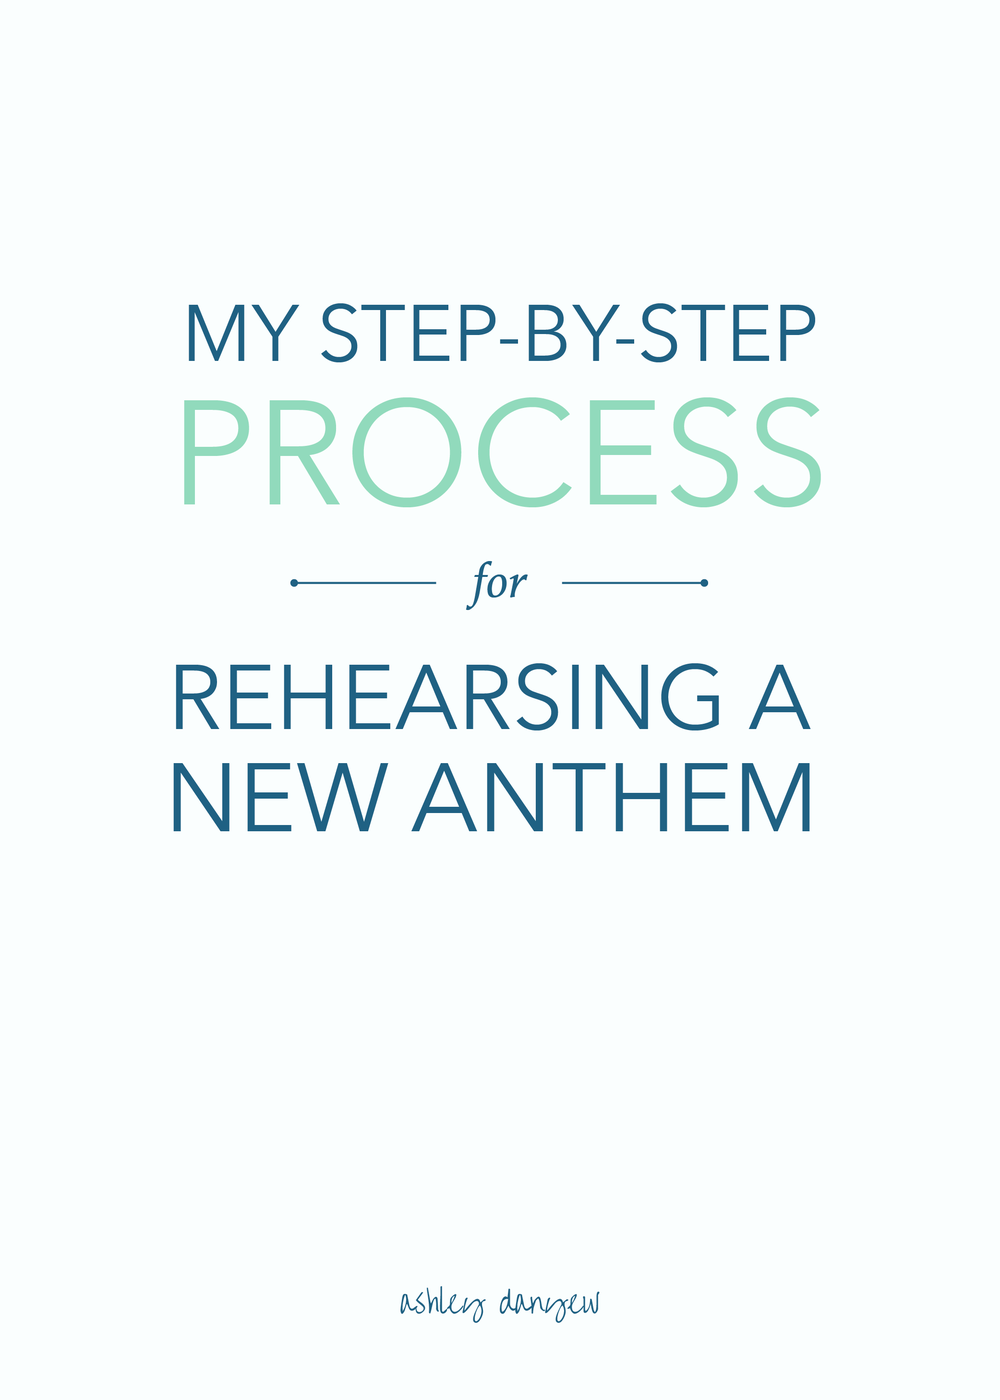 Copy of My Step-By-Step Process for Rehearsing a New Anthem